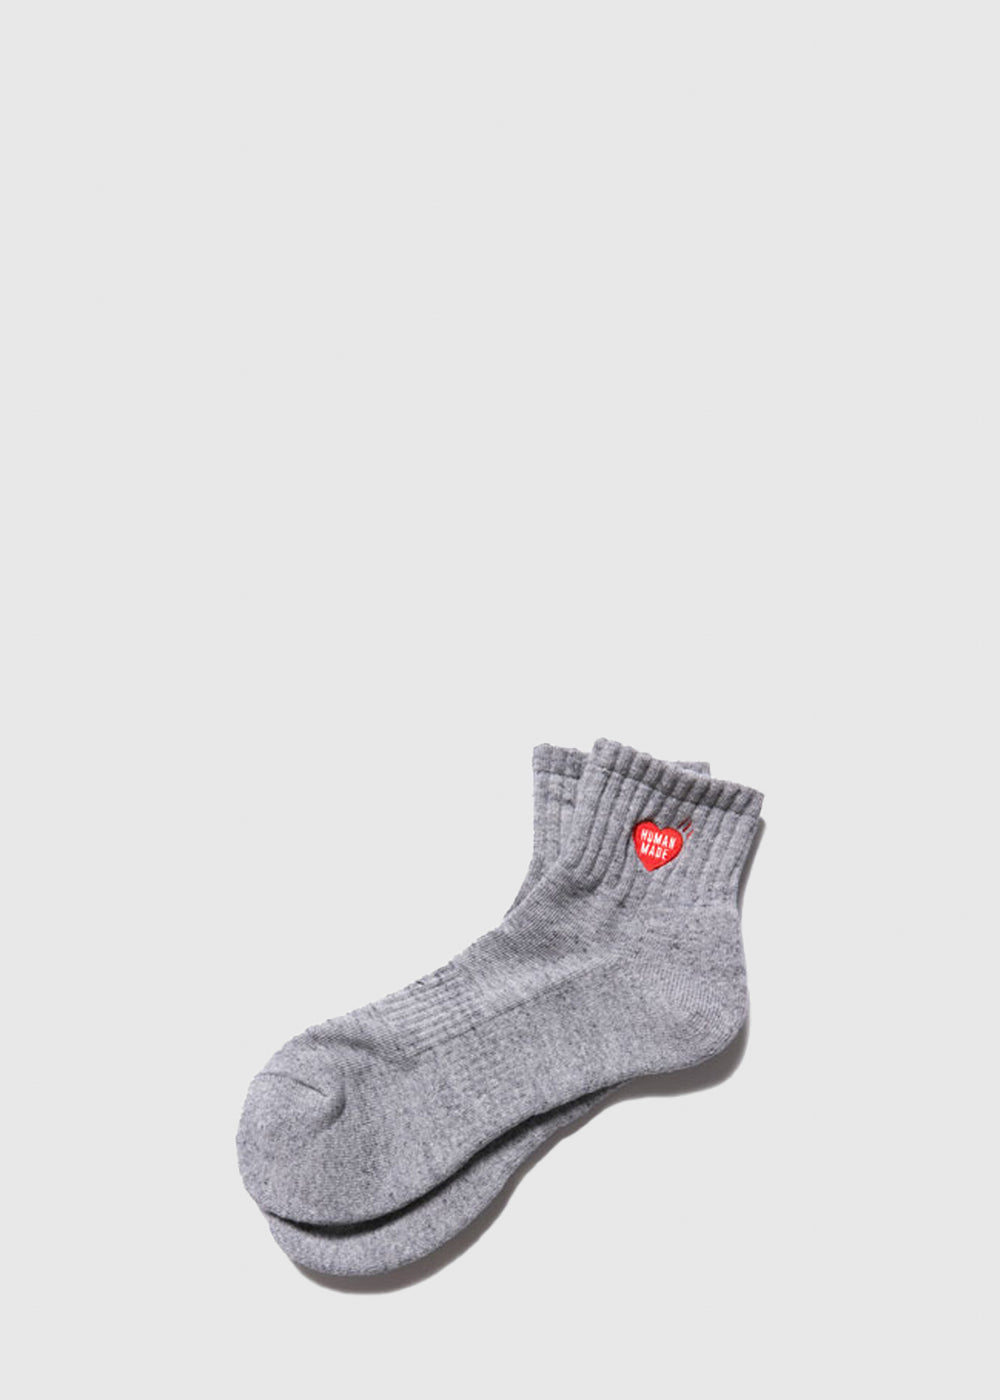 hmmd-short-pile-sock-hm19gd027-gry-gry-1